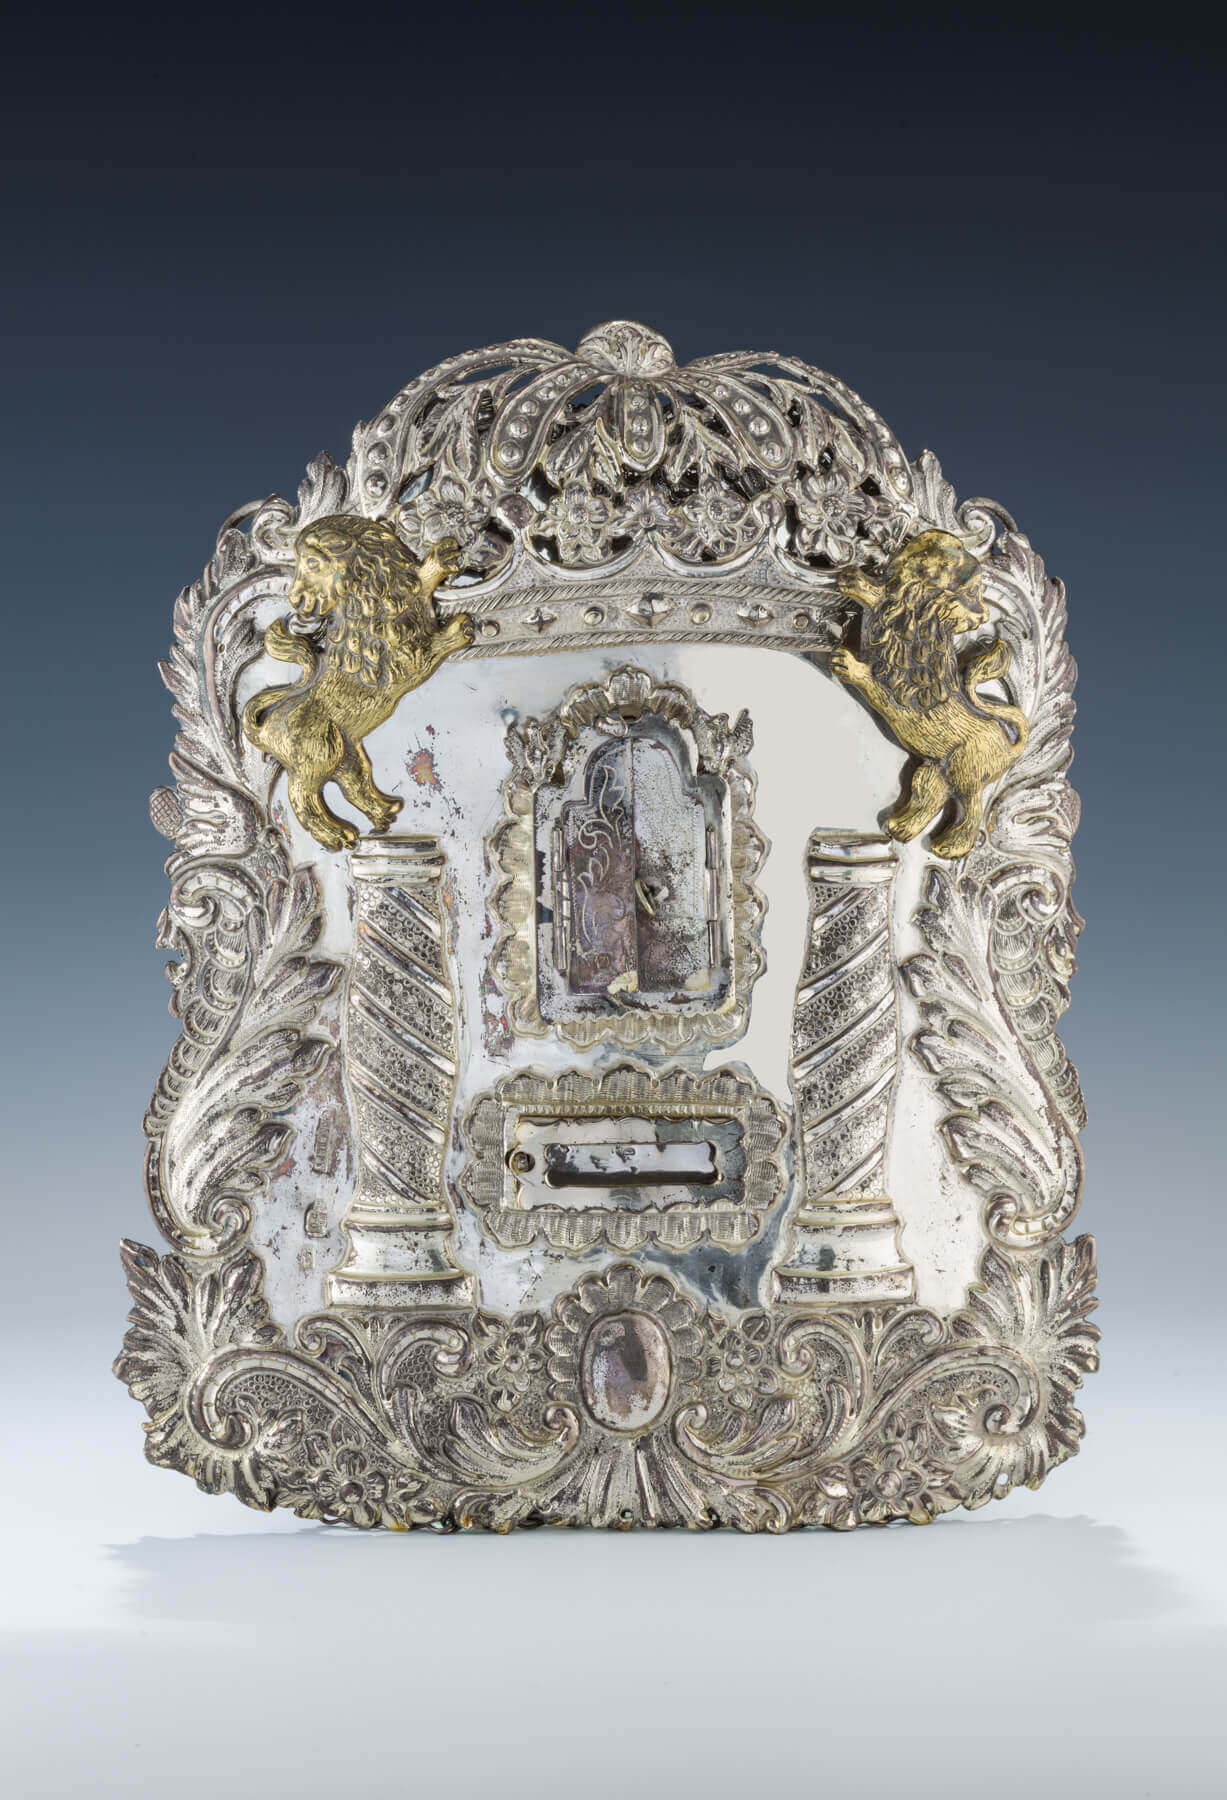 131. A SILVER TORAH SHIELD